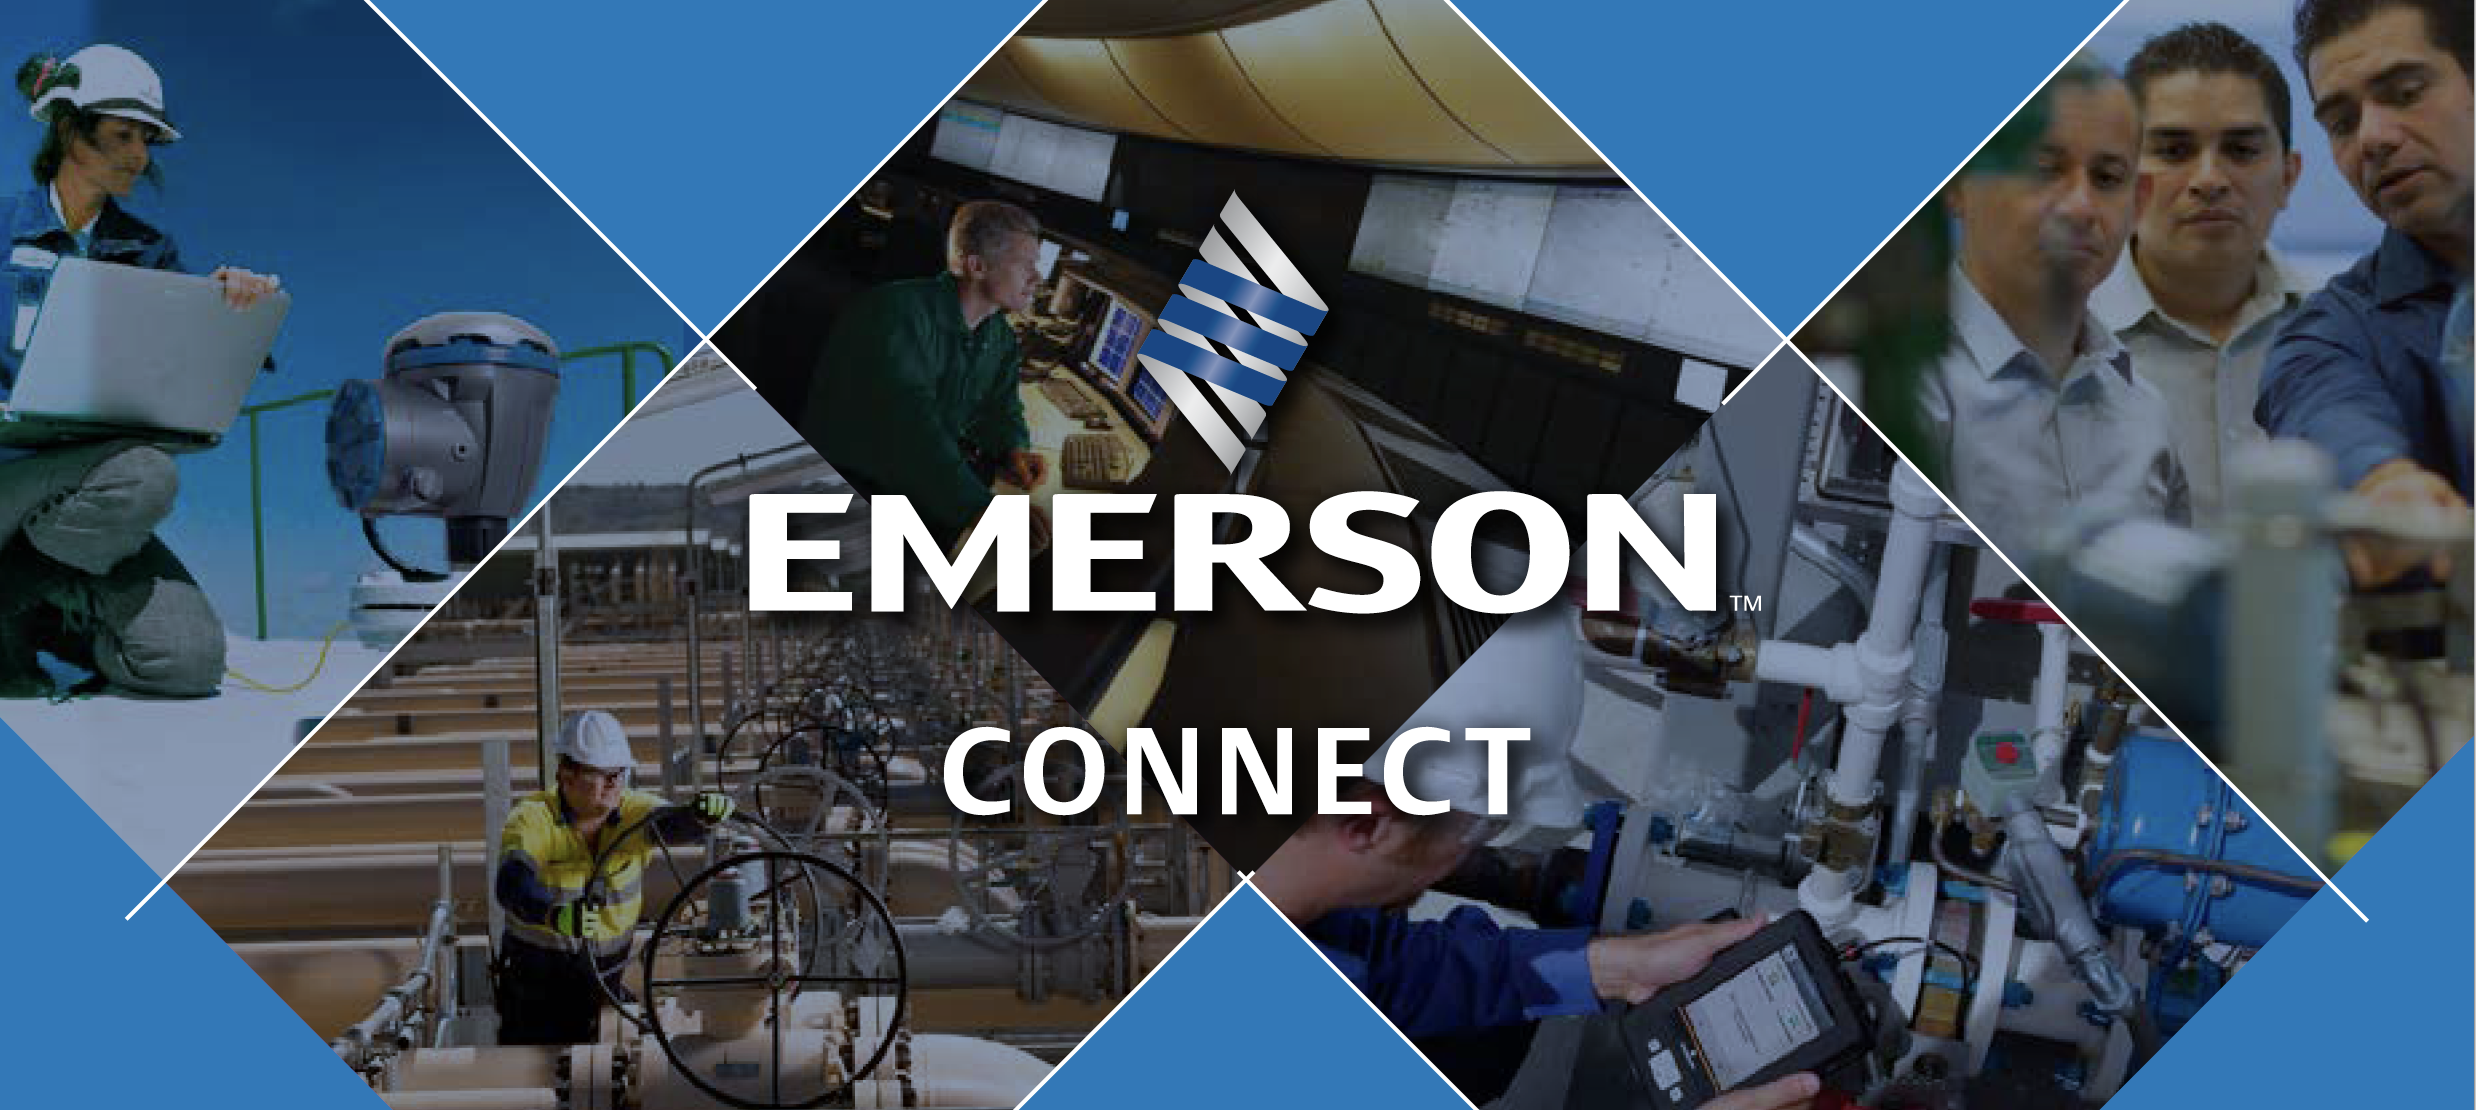 Emerson Connect Melbourne – Reliability & Operational Certainty